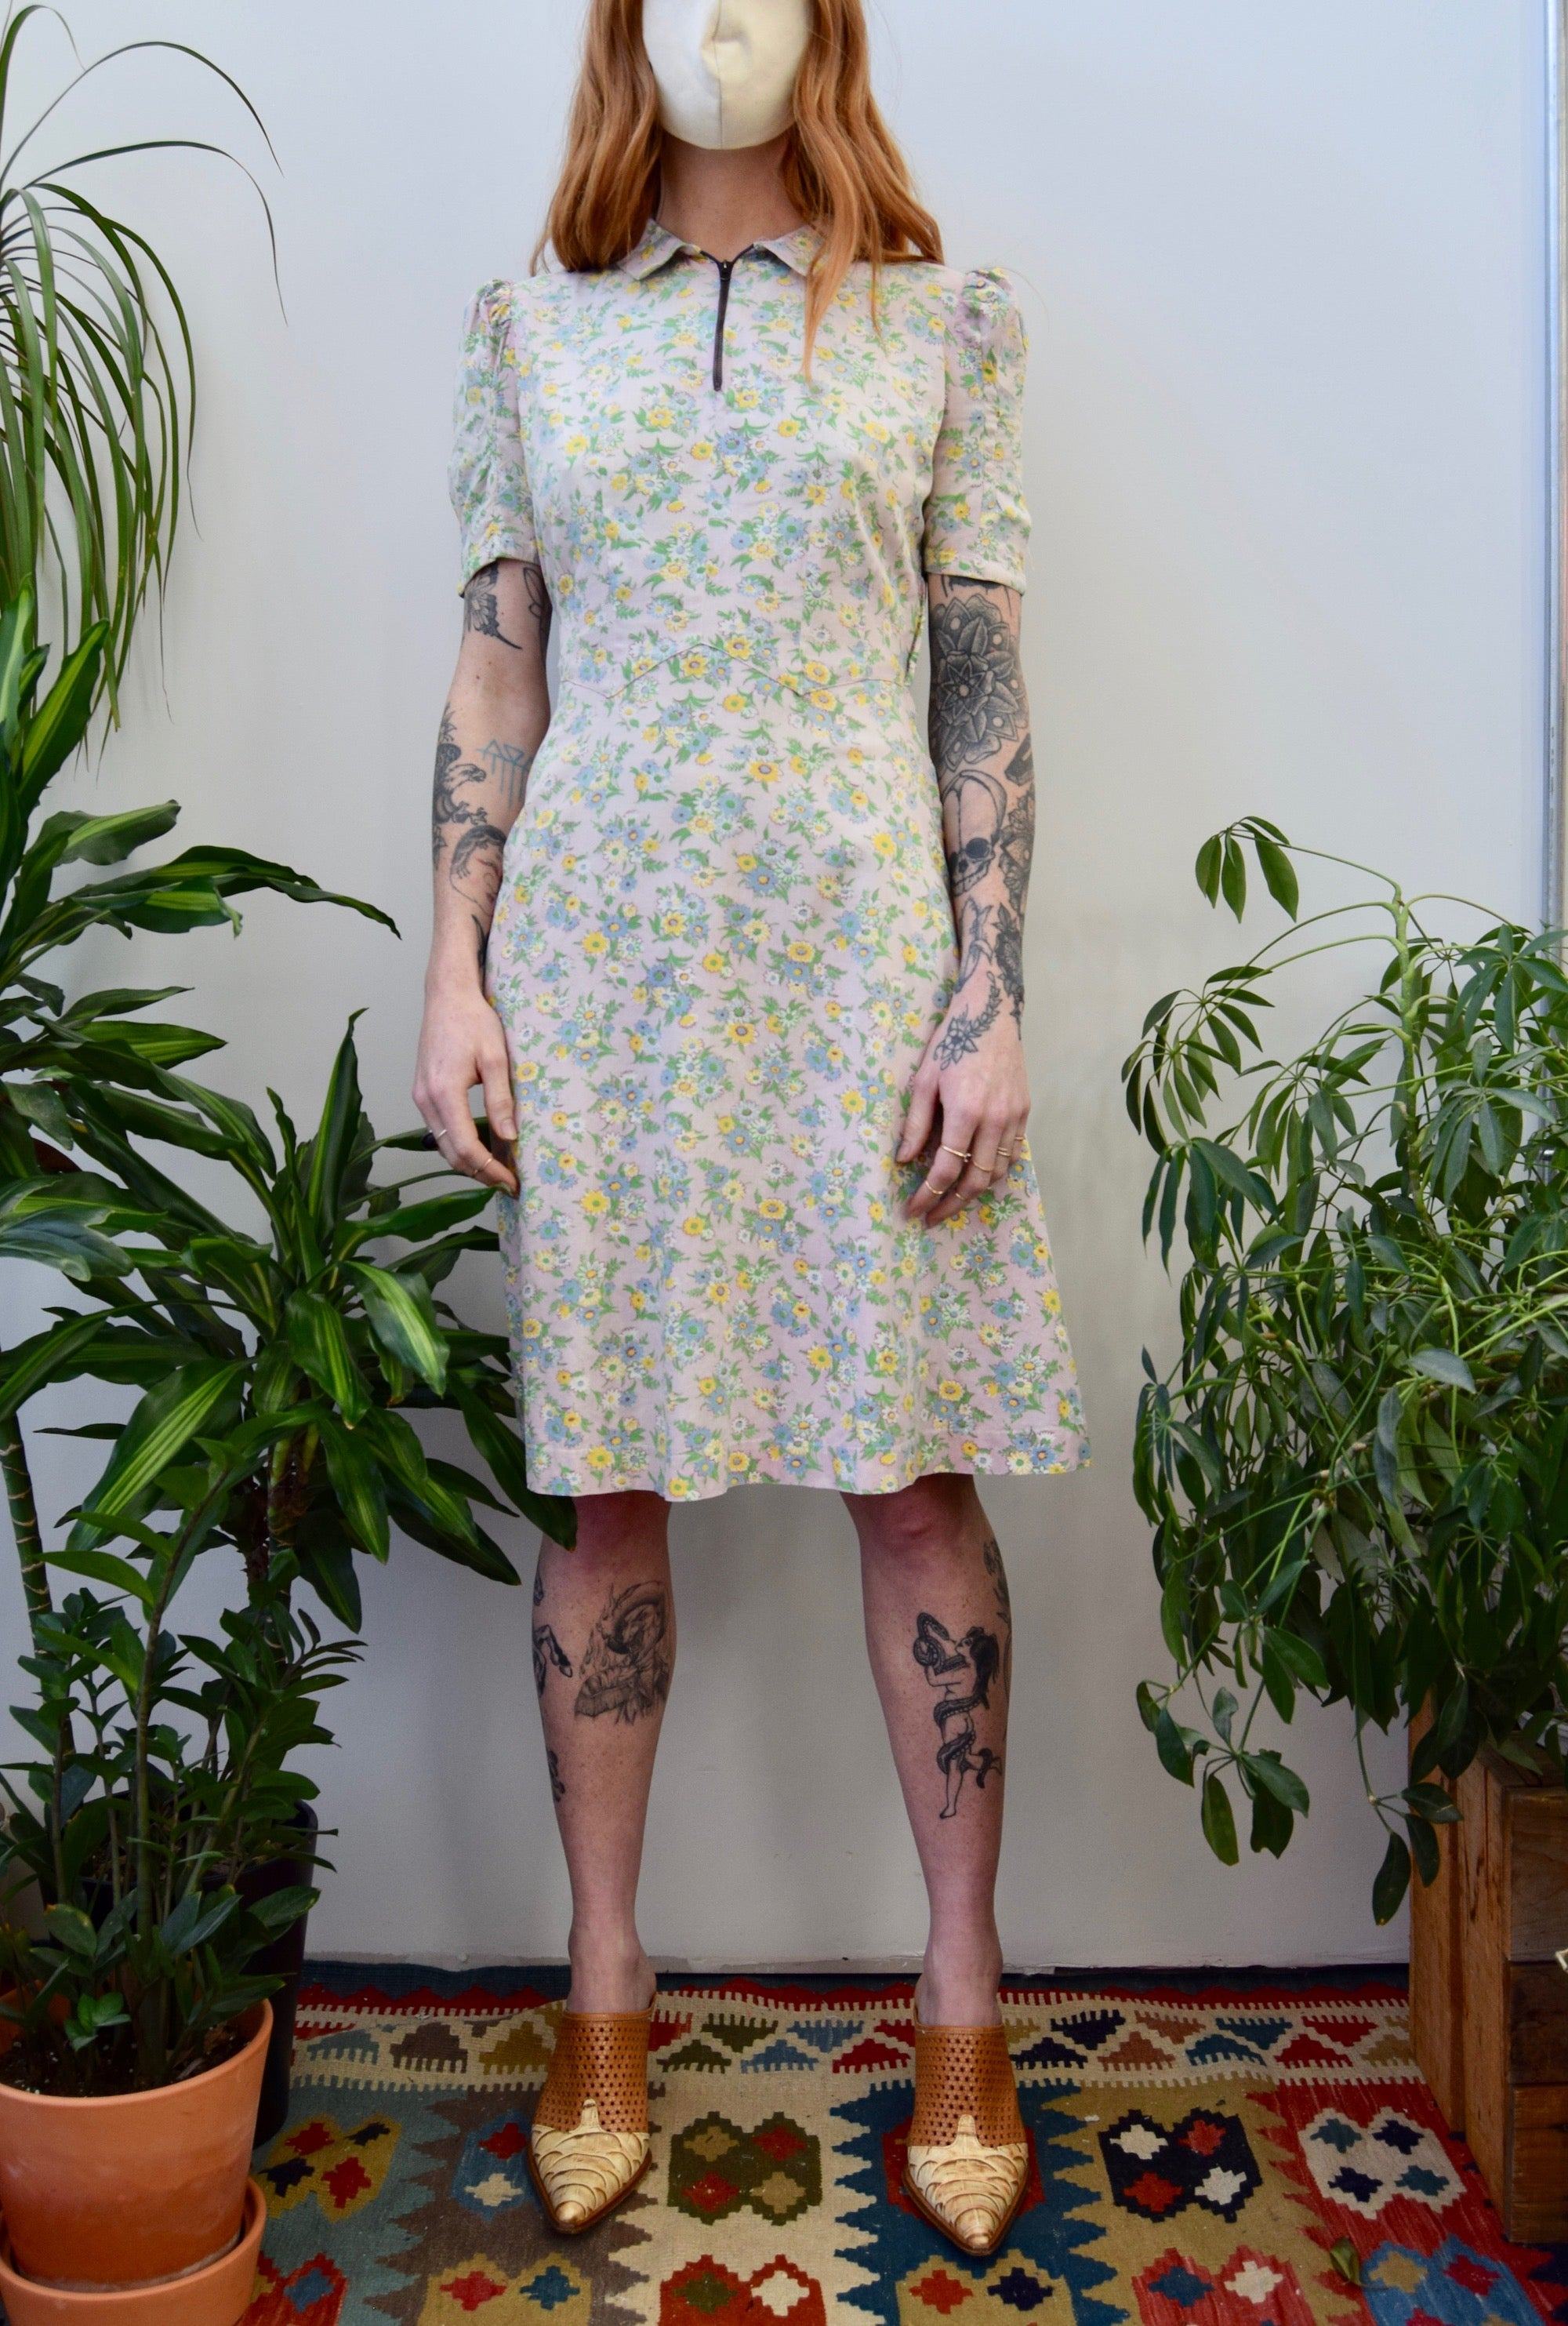 Forties Feedsack Cotton Dress